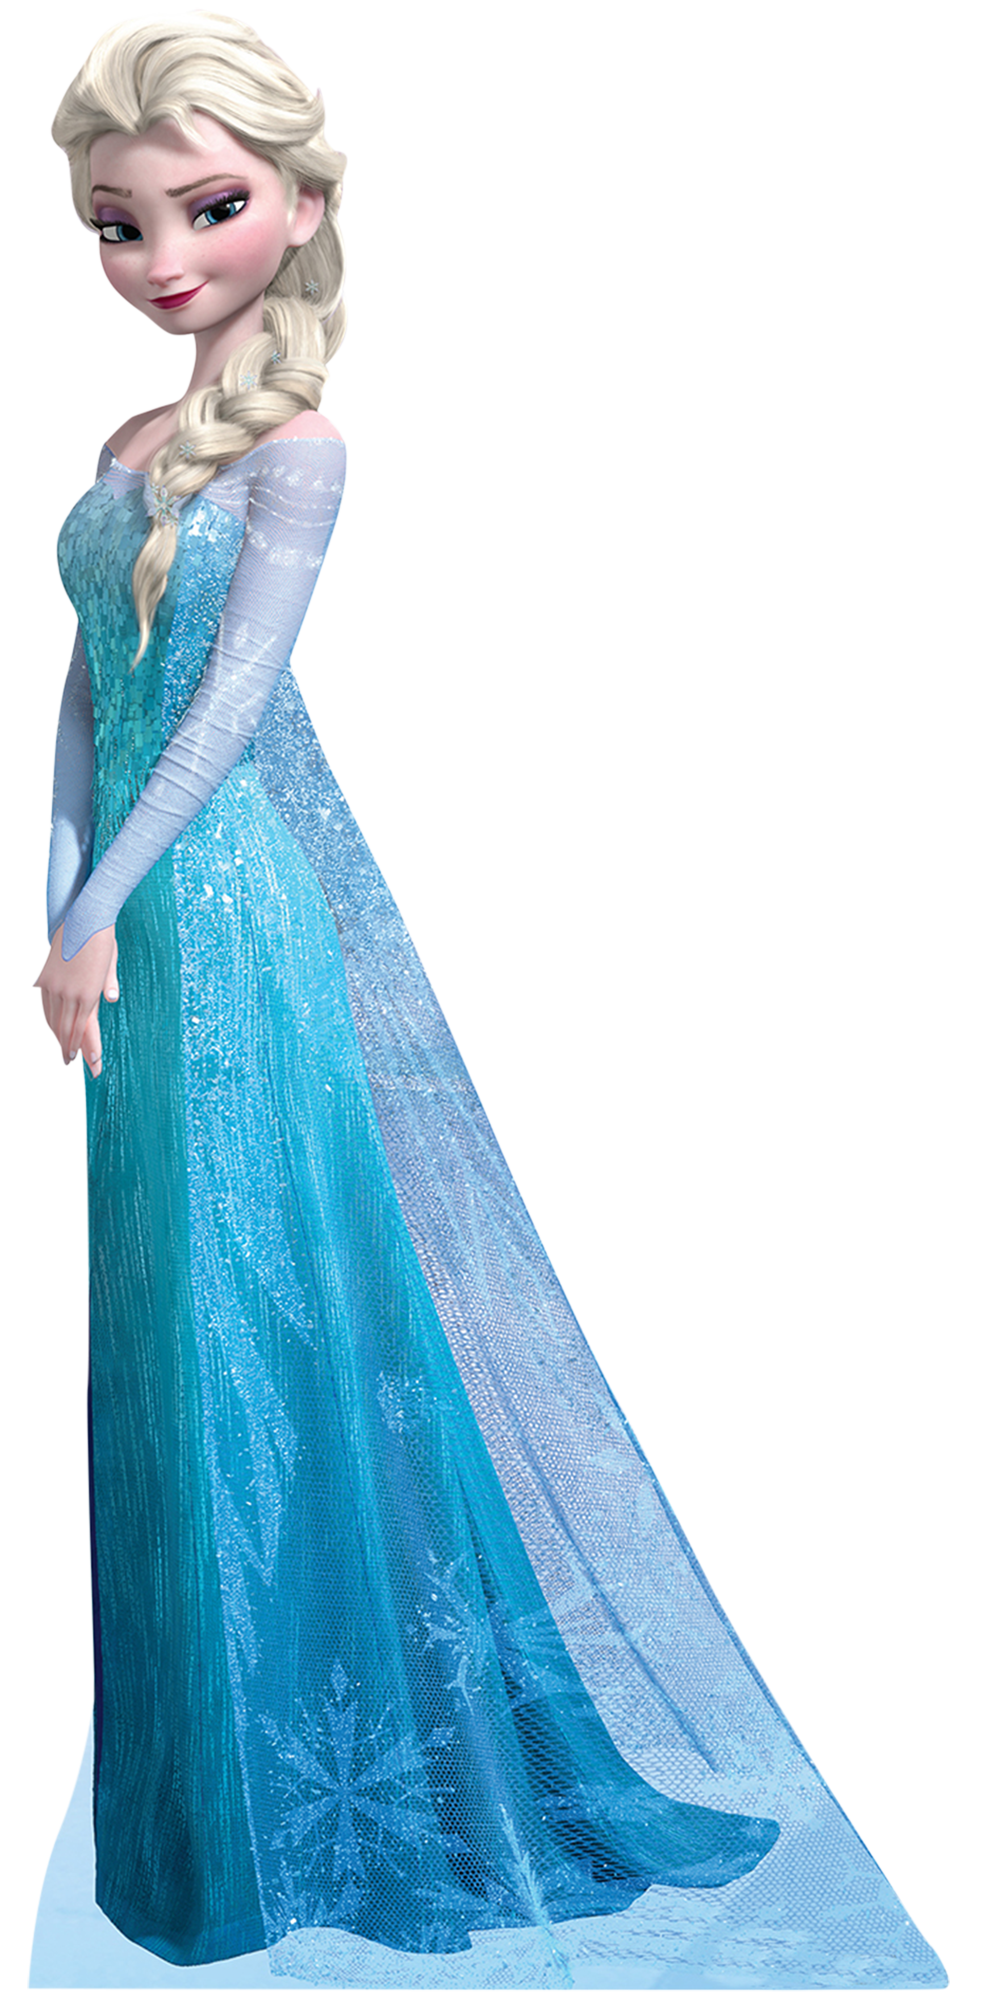 Frozen PNG Transparent Images.